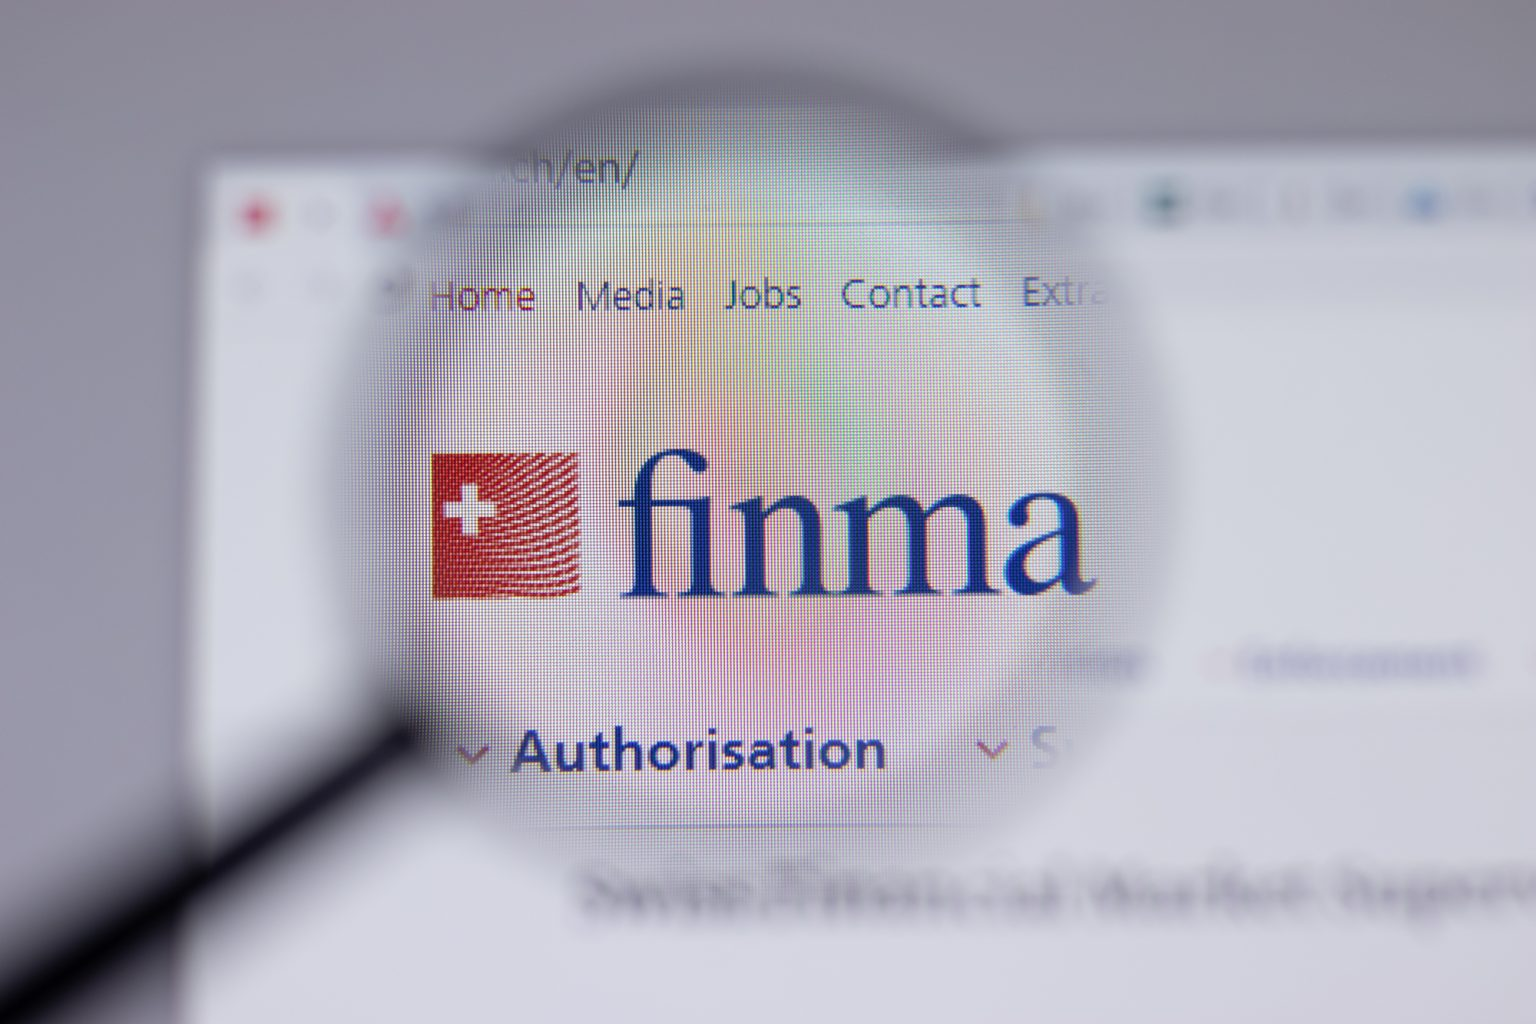 SIX Digital Exchange (SDX) receives FINMA approval